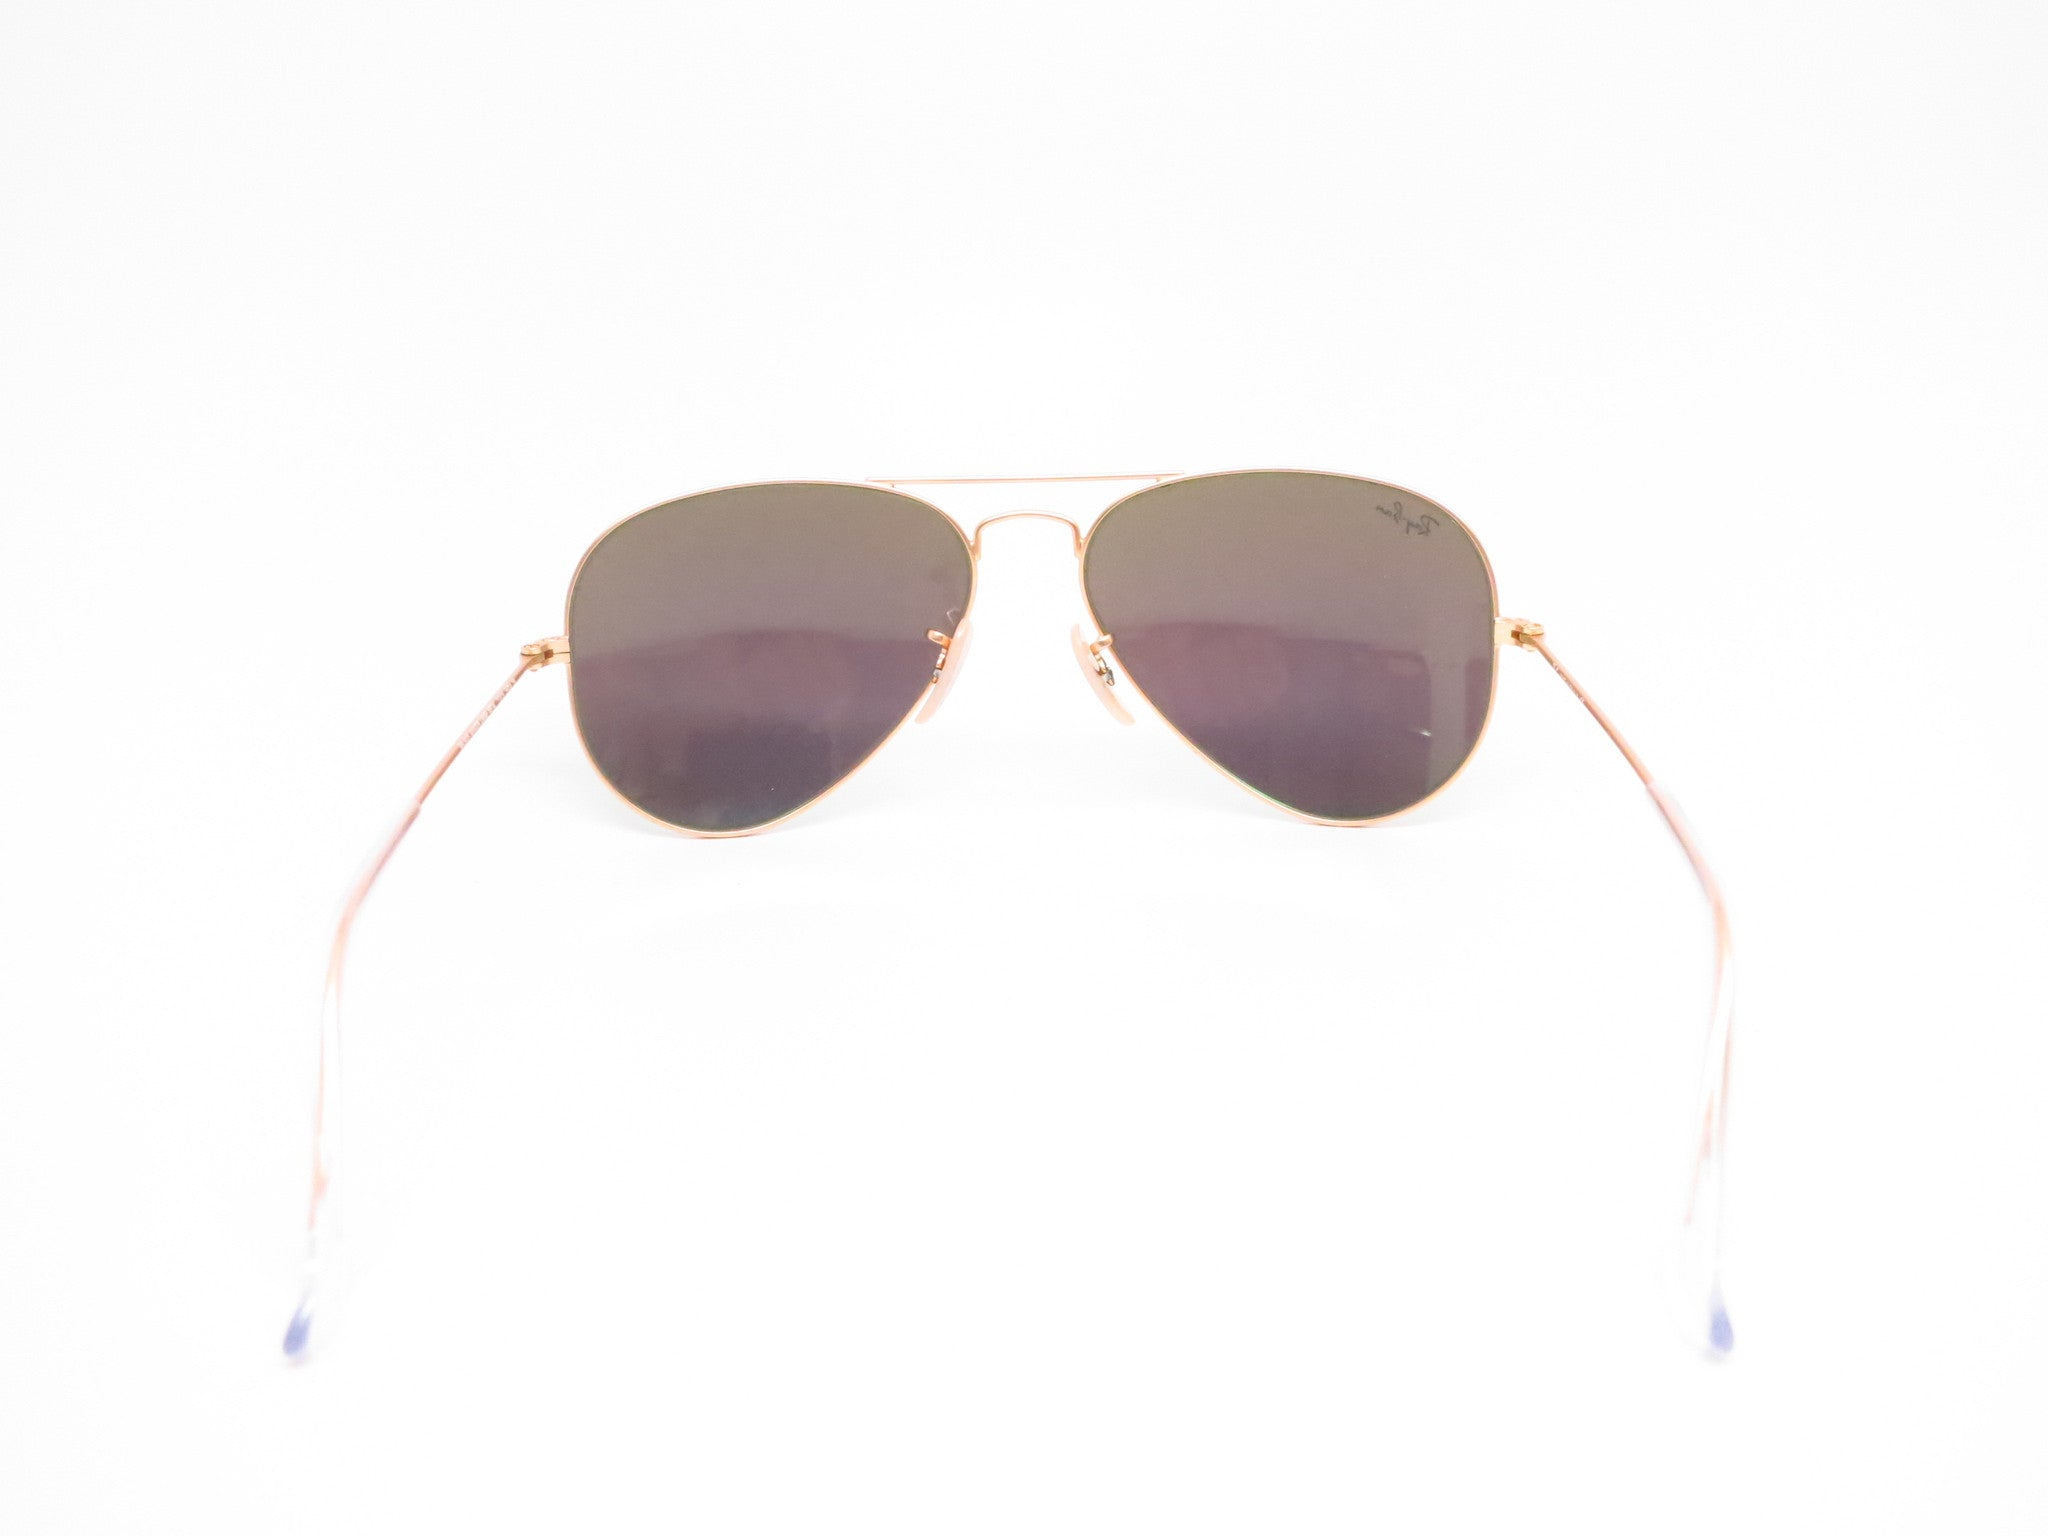 ray ban history Aviator sunglasses are a style of sunglasses that were developed by bausch & lomb the original bausch & lomb design is now marketed as ray-ban aviators , although other manufacturers also produce aviator style sunglasses.